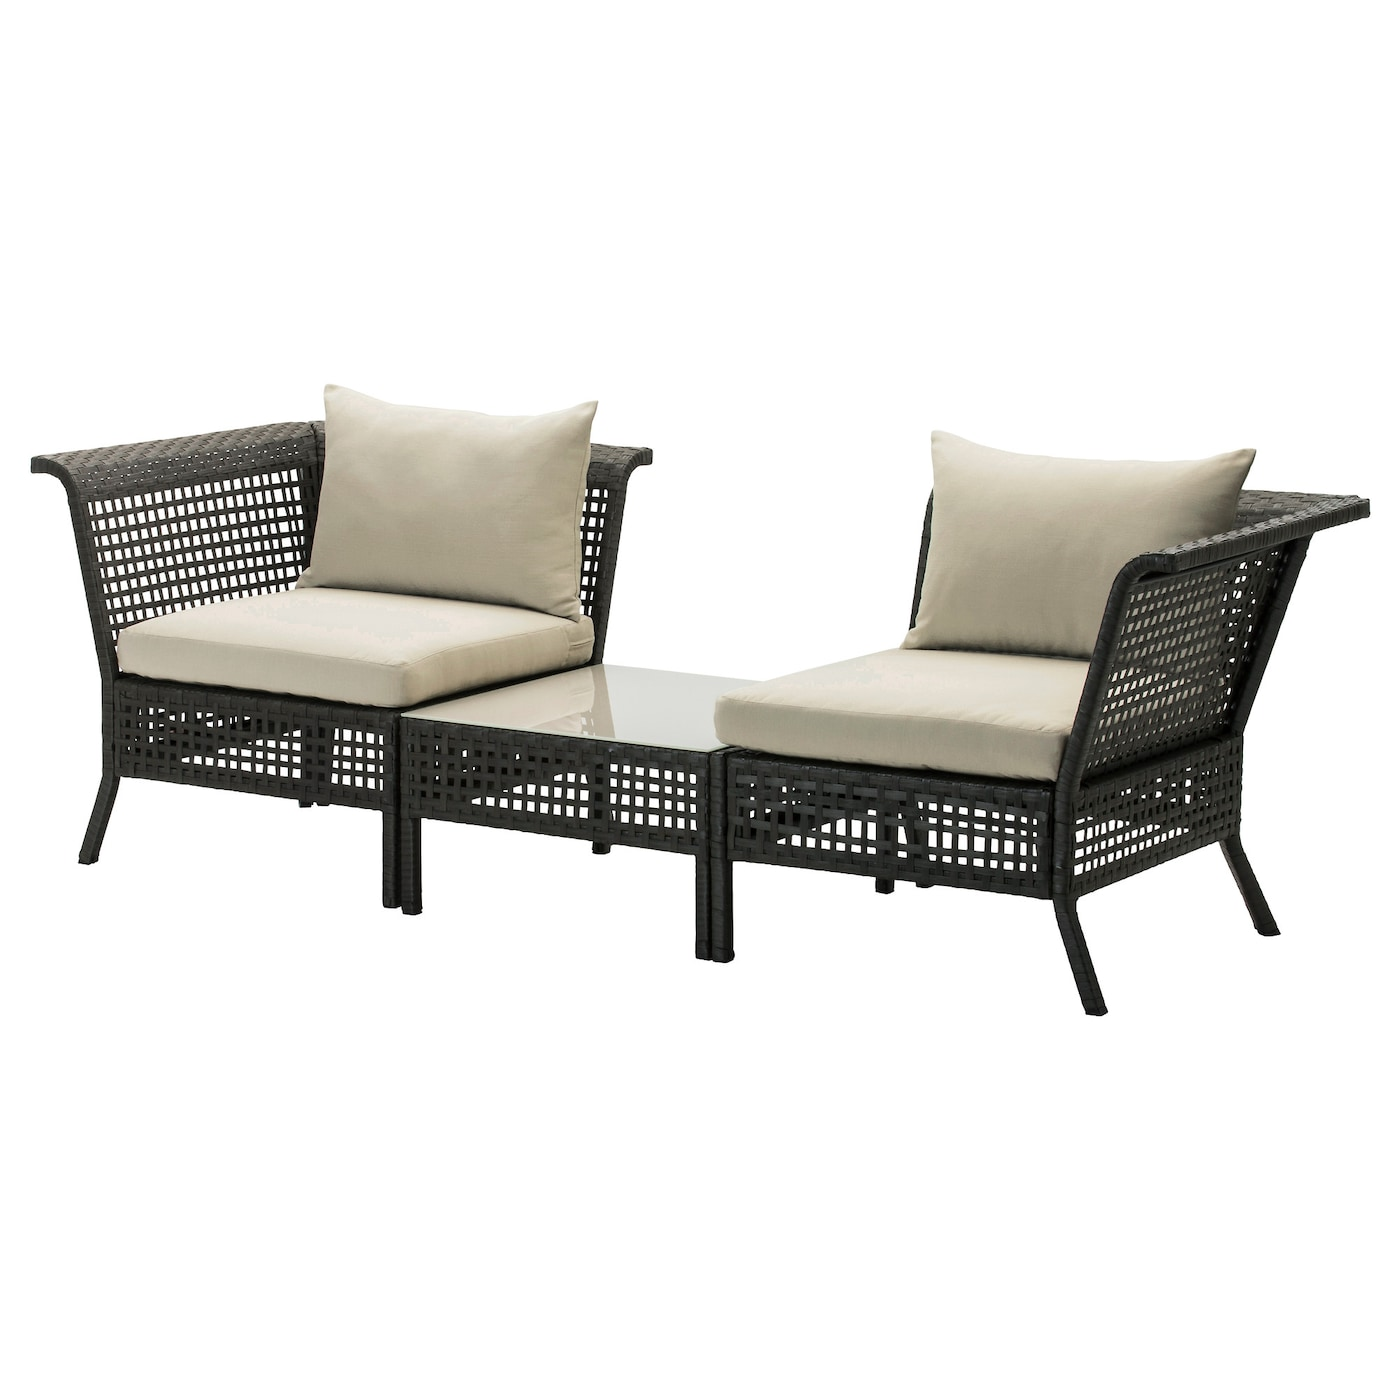 h ll kungsholmen corner easy chairs w table outdoor. Black Bedroom Furniture Sets. Home Design Ideas